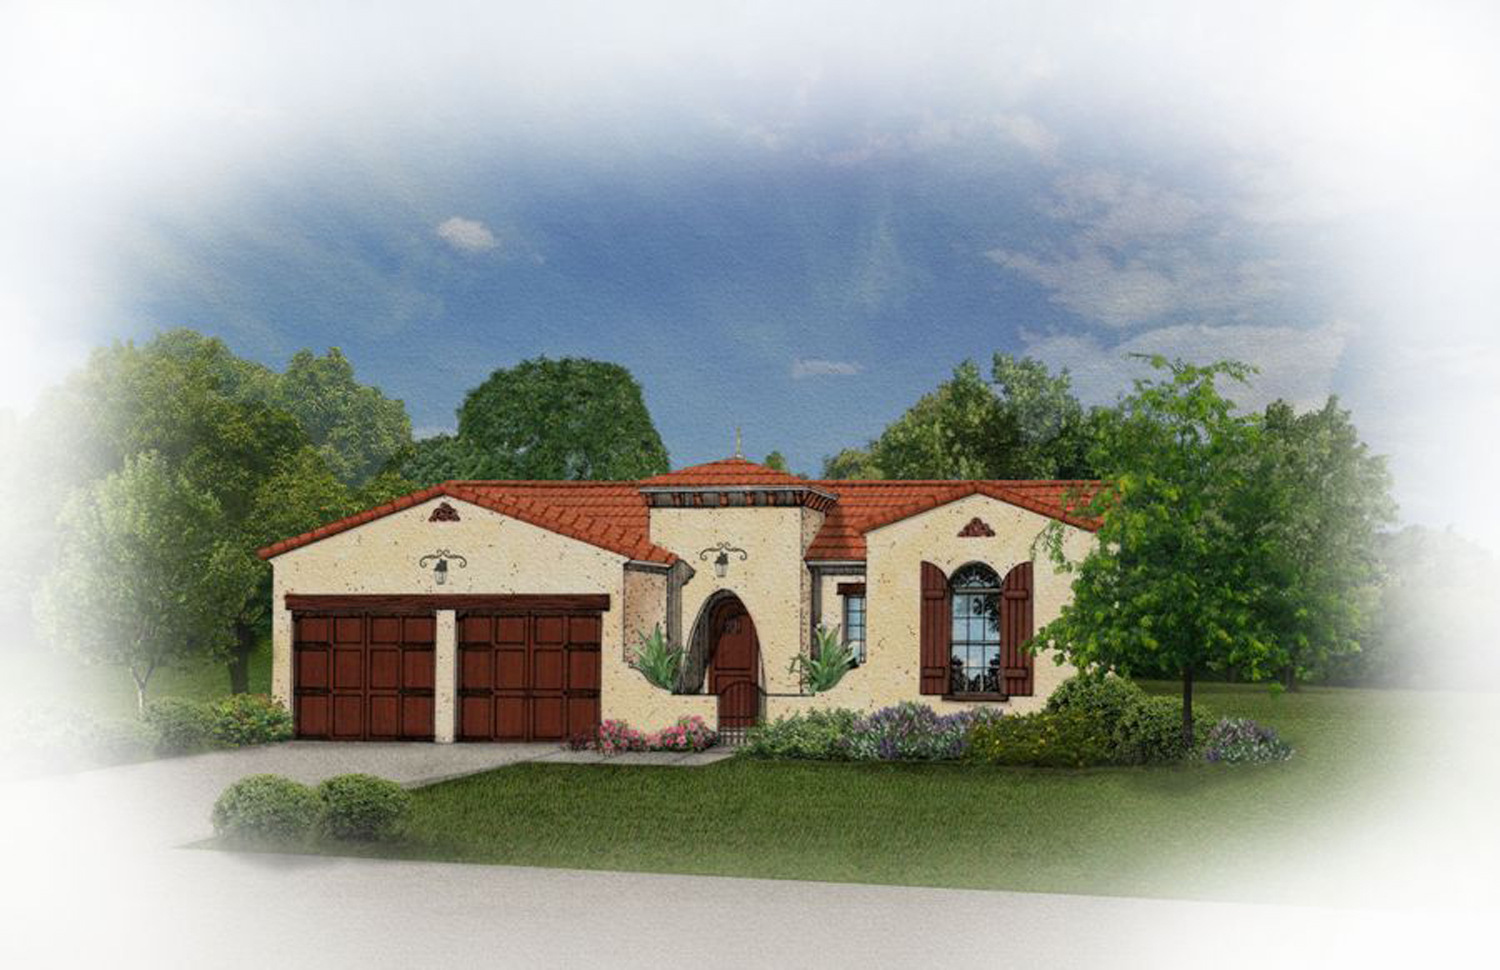 Mediterranean home with front courtyard 82020ka for Mediterranean home plans with courtyards